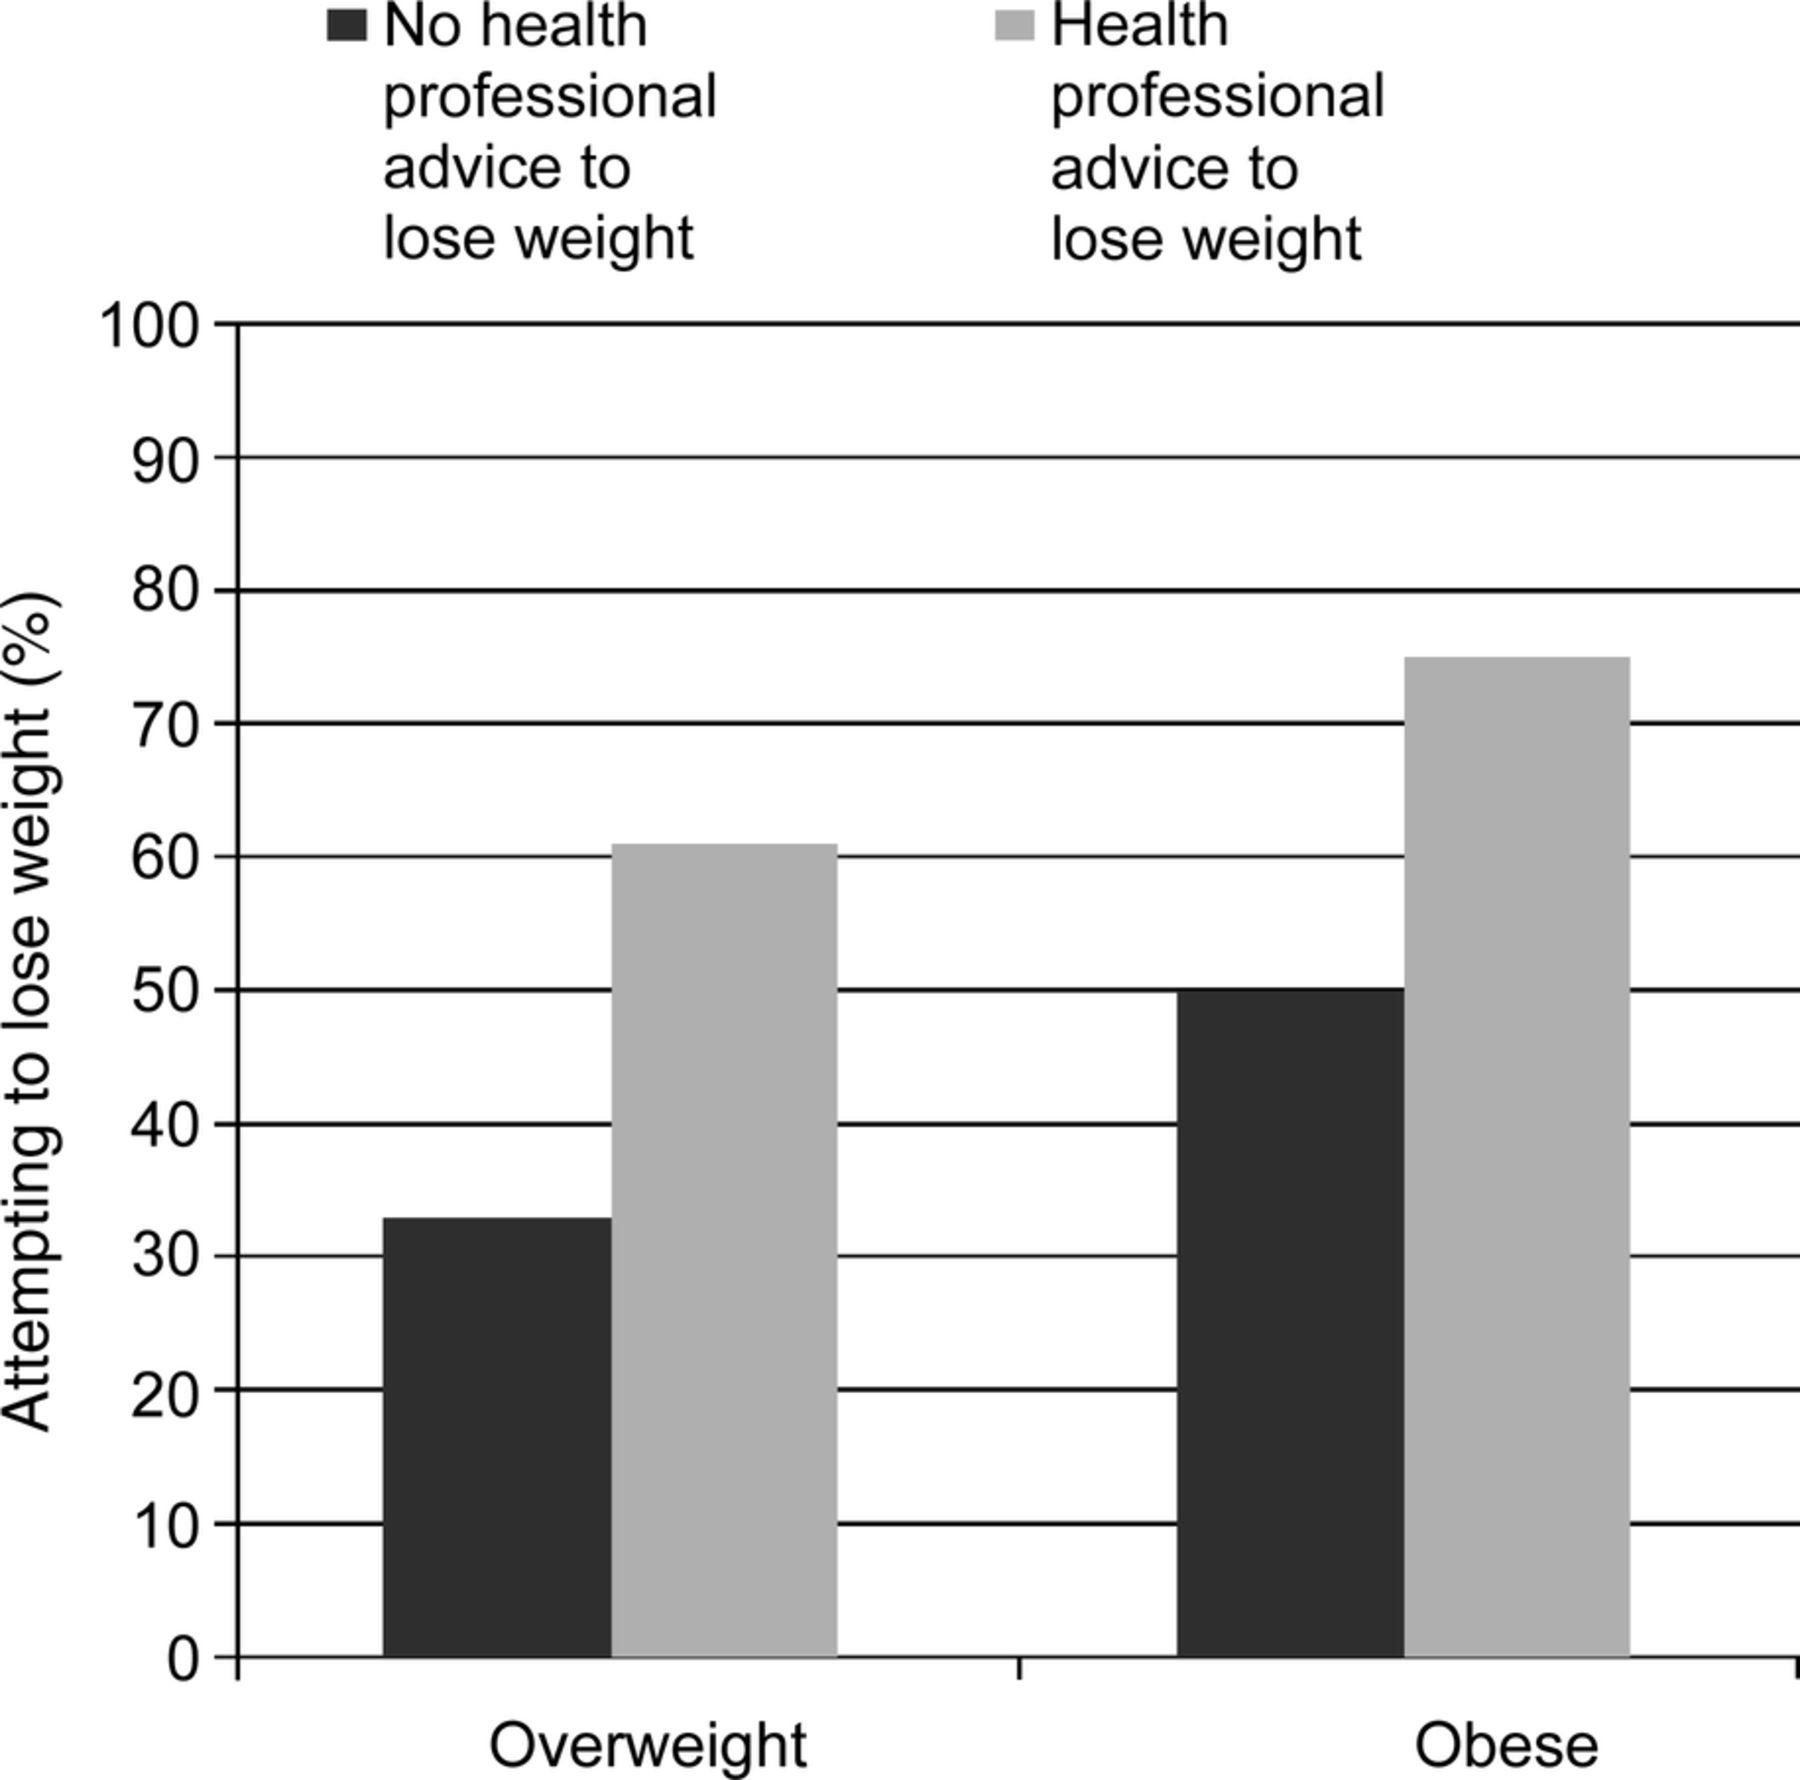 The impact of a health professional recommendation on weight loss ...